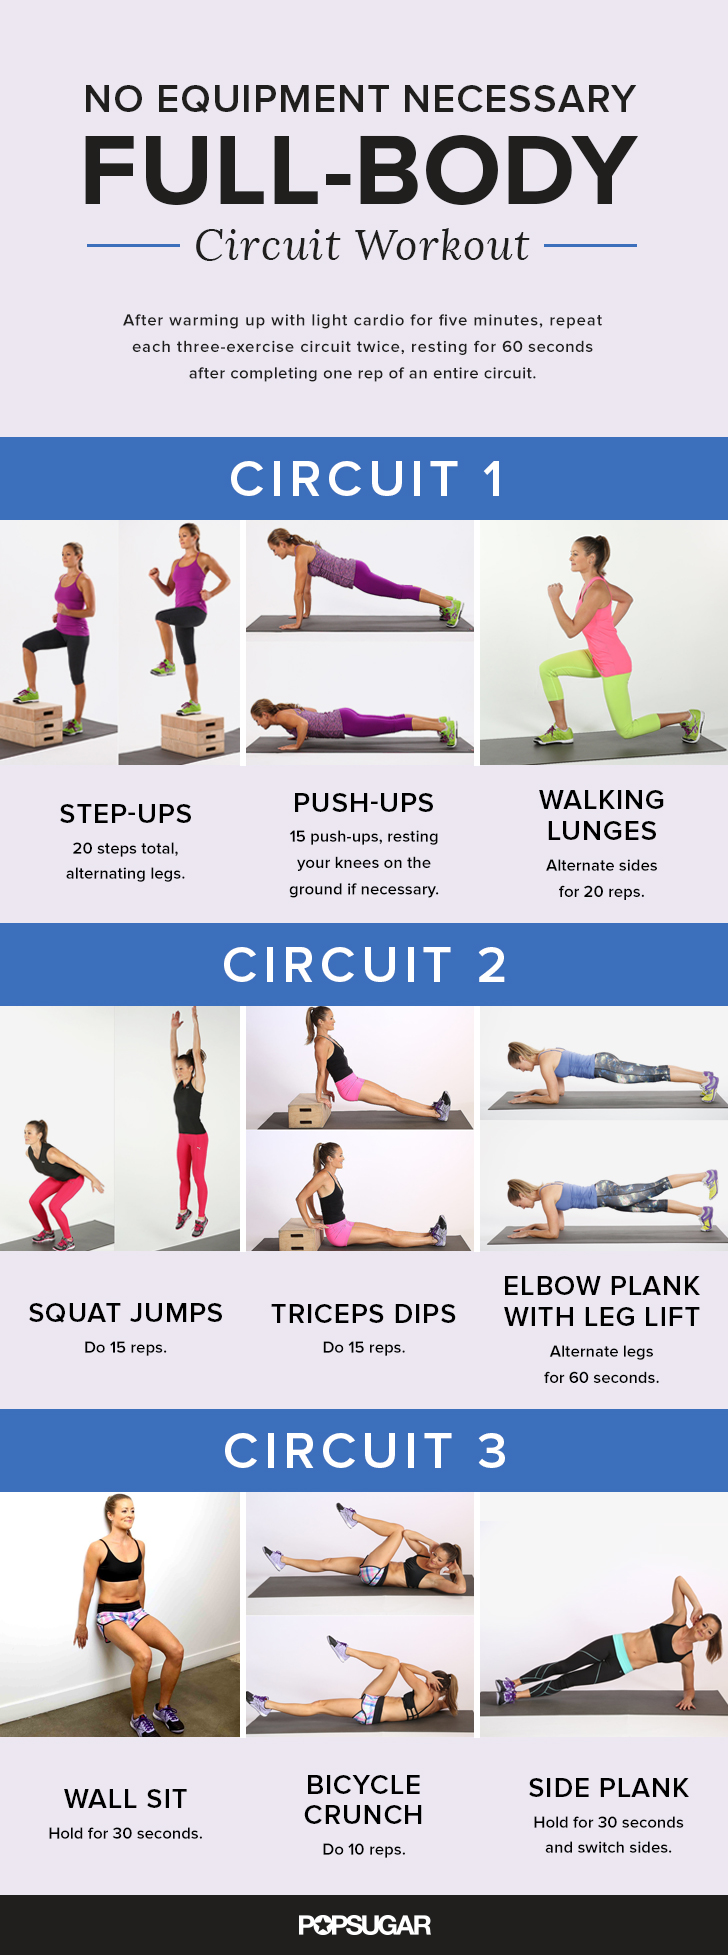 Full Body Workouts That You Can Do At Home - The Inspiration Lady